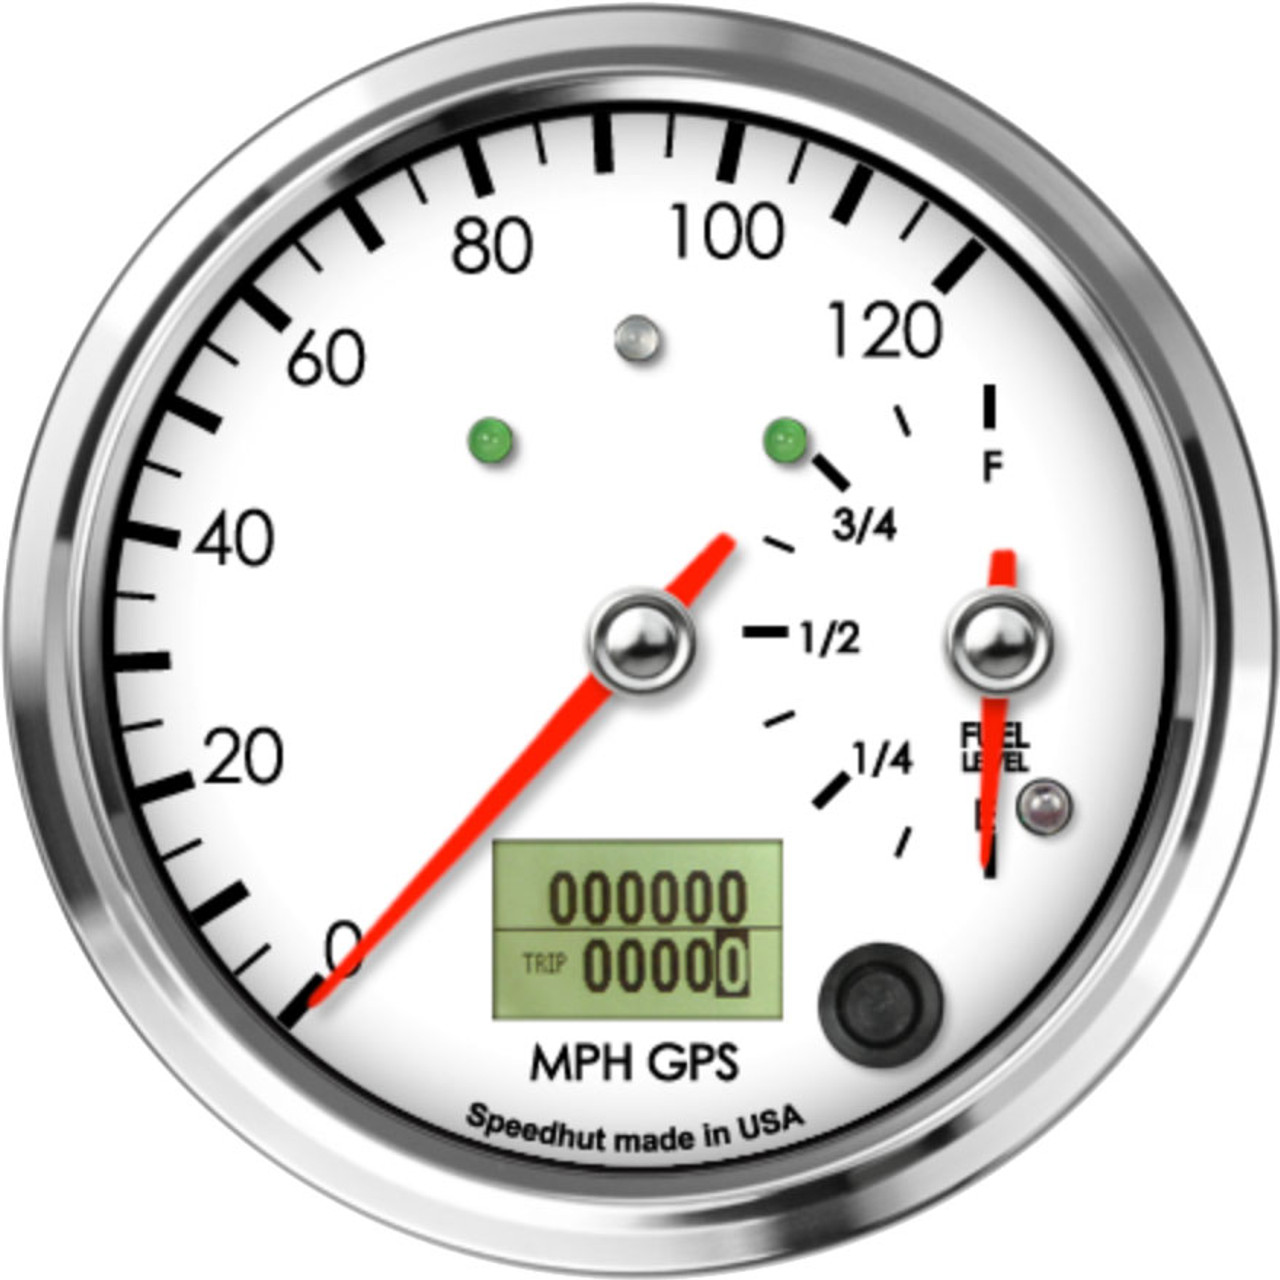 """4"""" Classic Dual Gauge - 120mph GPS Speedometer / Fuel Level (w/ turn signal and high beam)"""